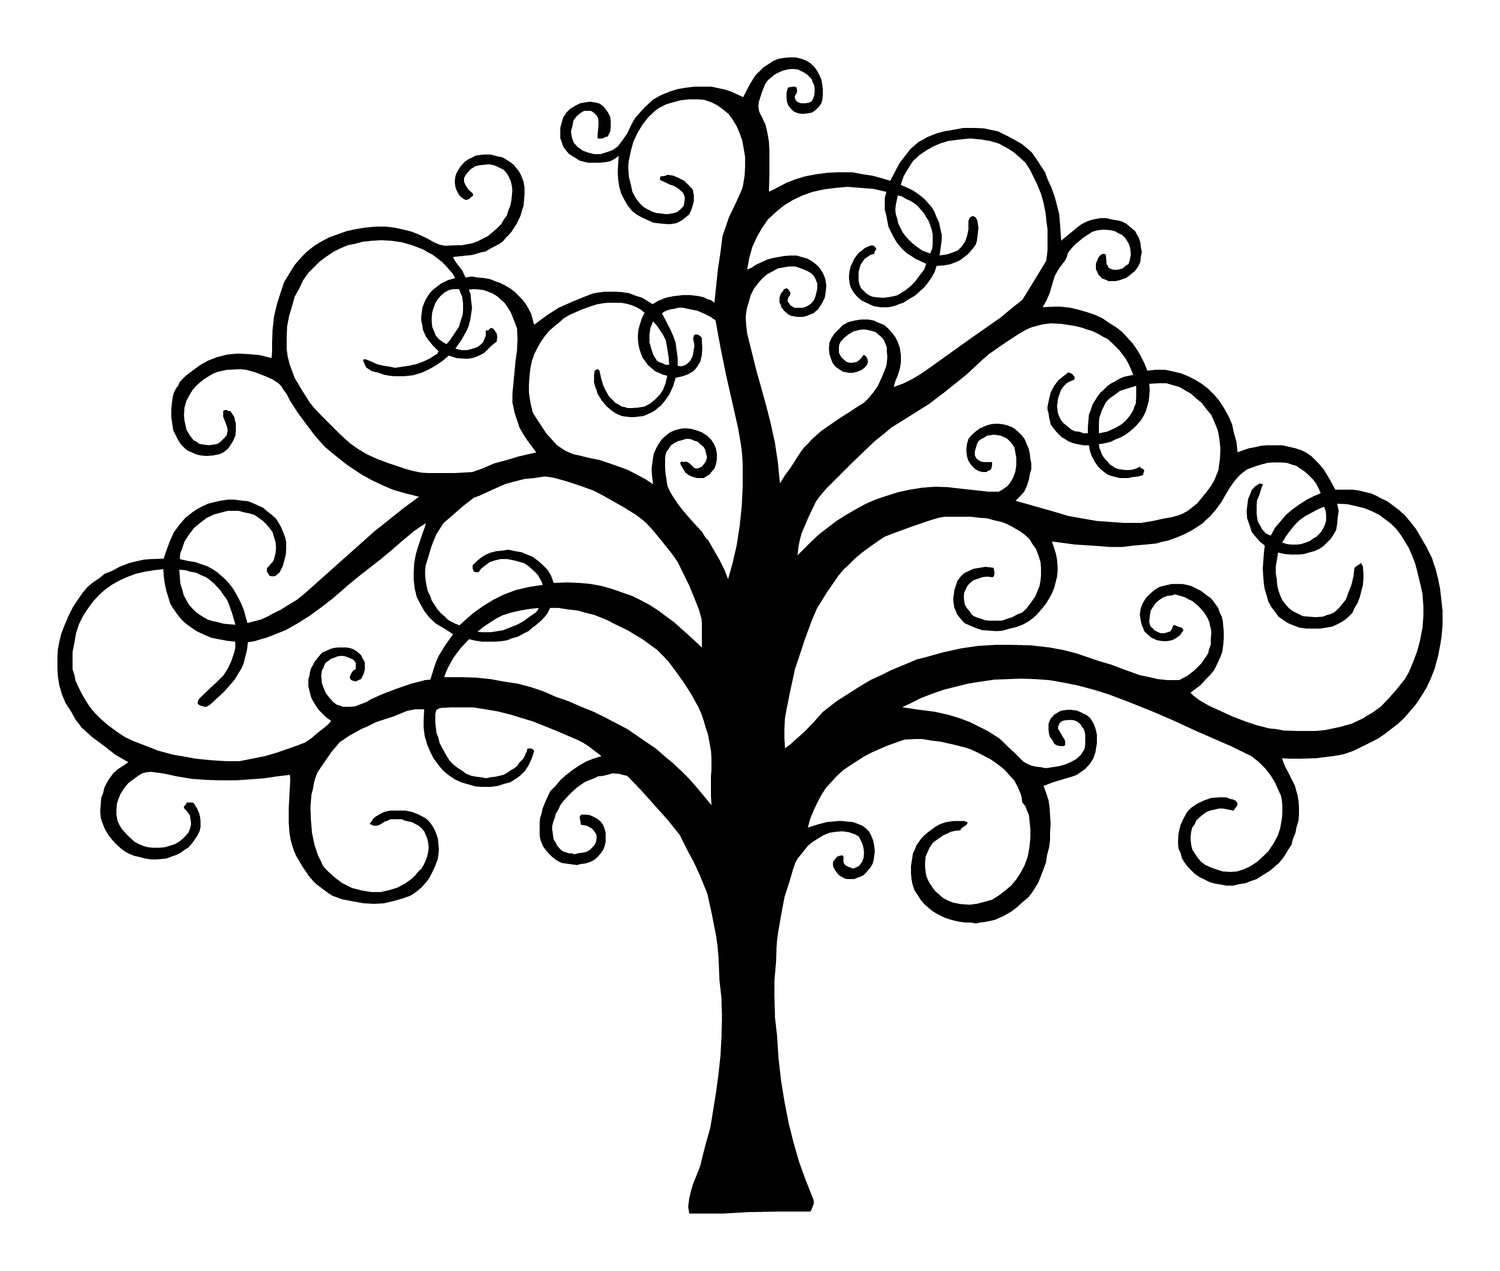 Whimsical tree clipart.